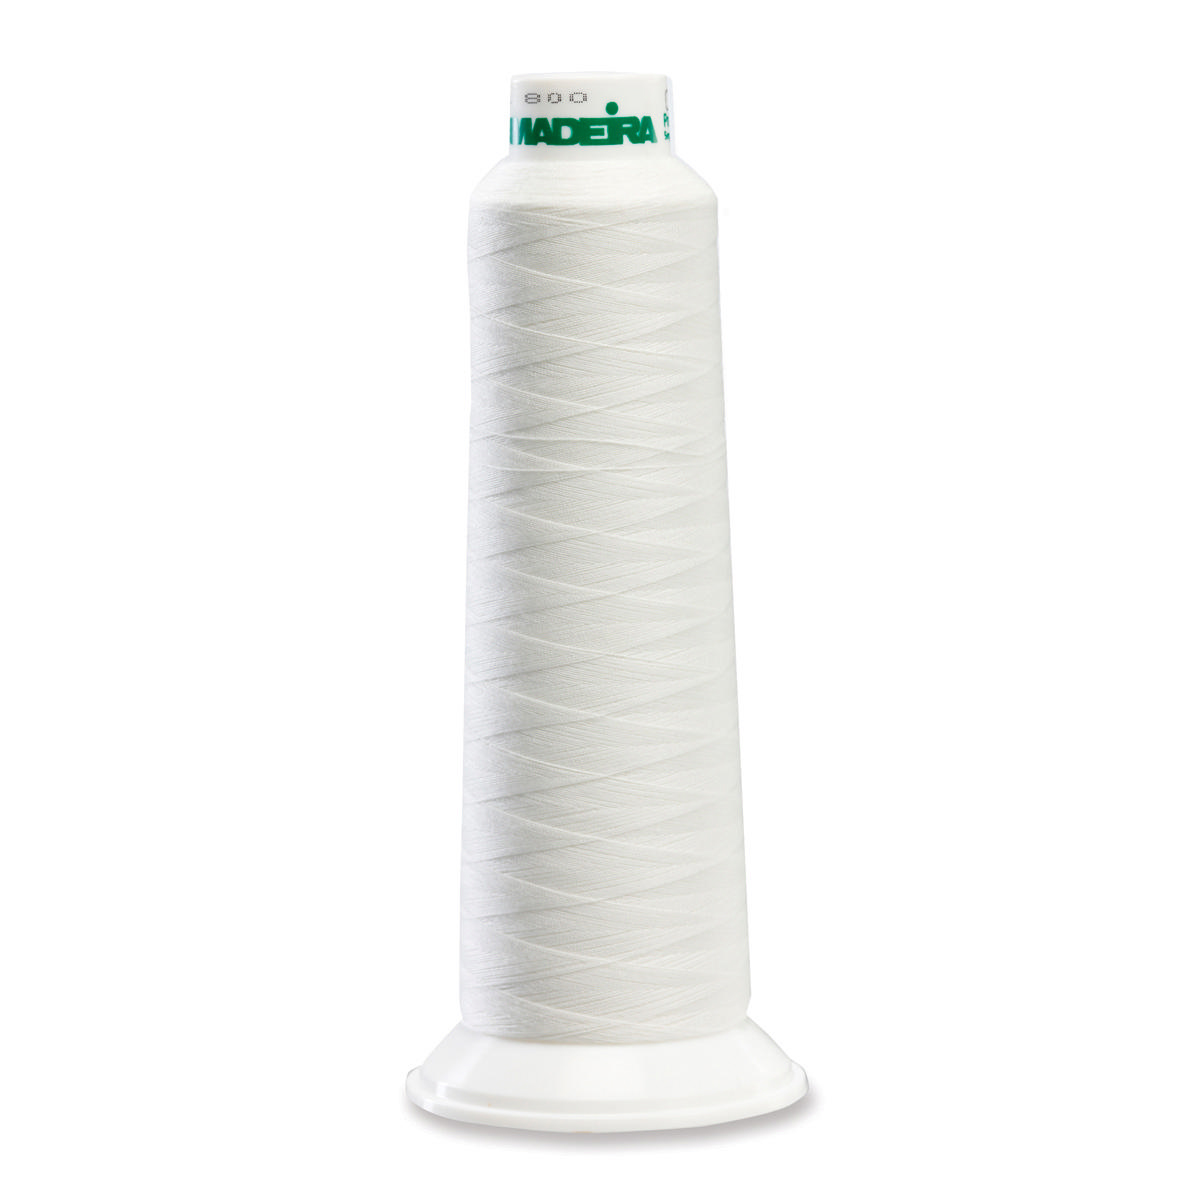 Eggshell 8020 Madeira Serger Thread